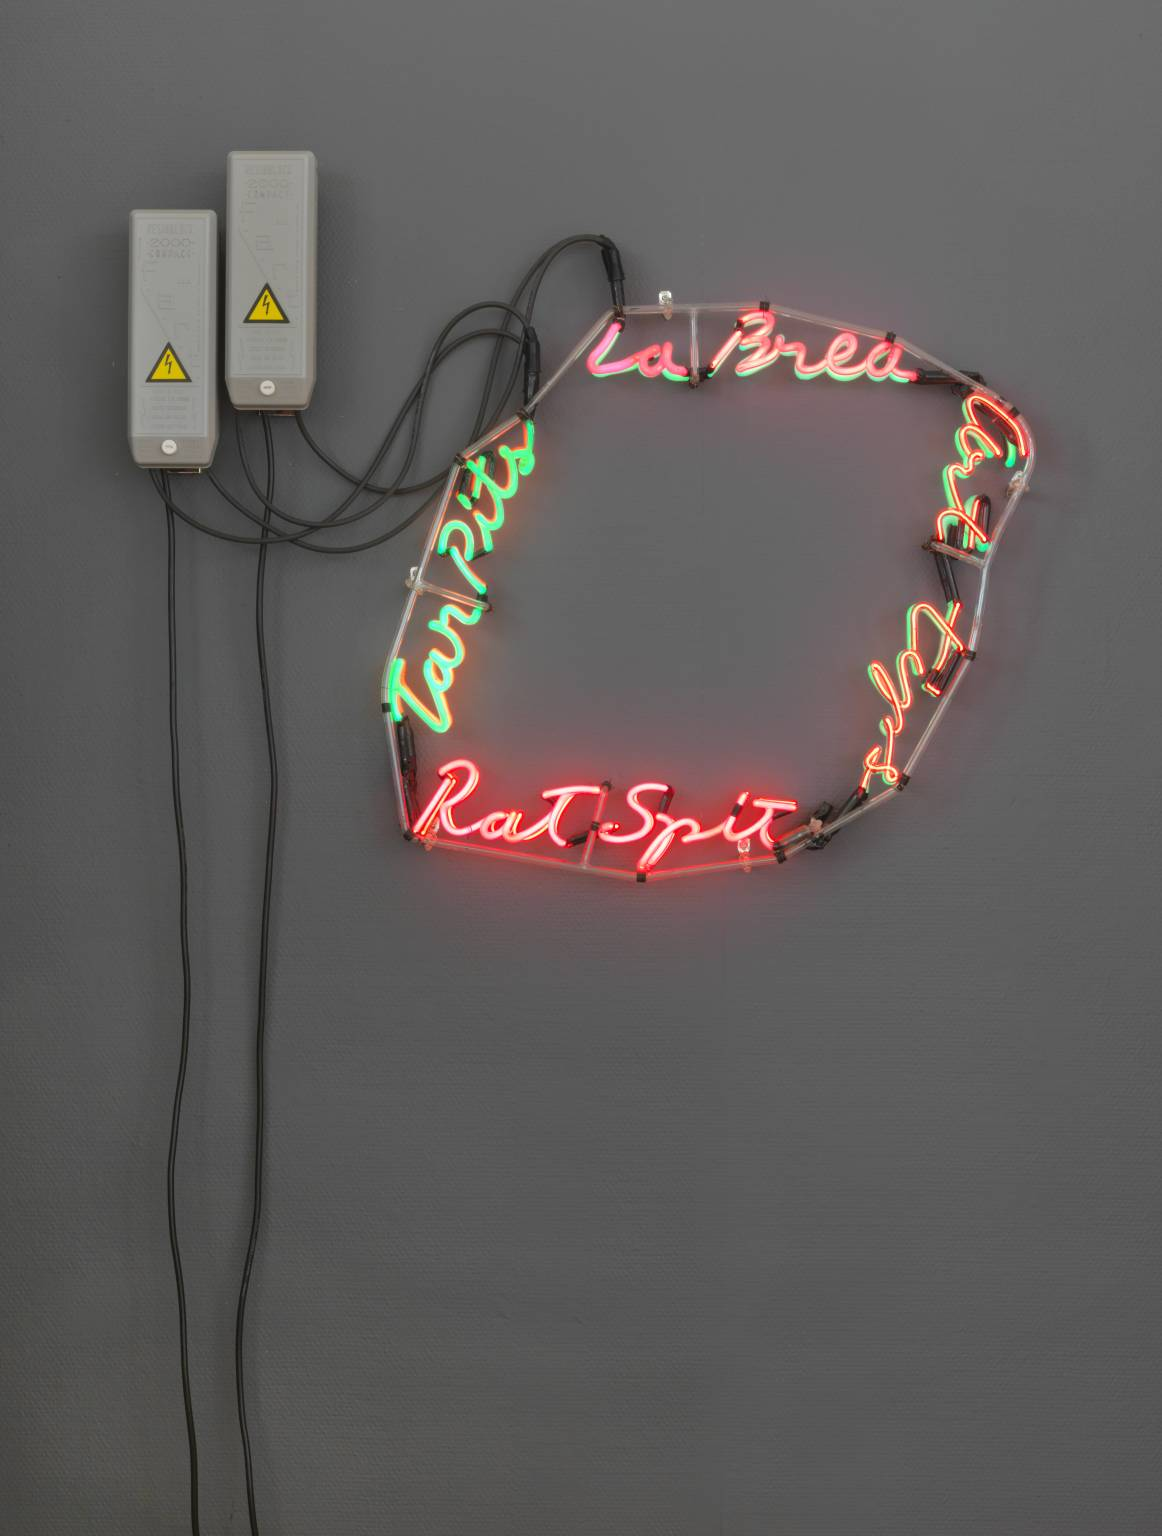 La Brea/Art Tips/Rat Spit/Tar Pits (1972) by Bruce Nauman